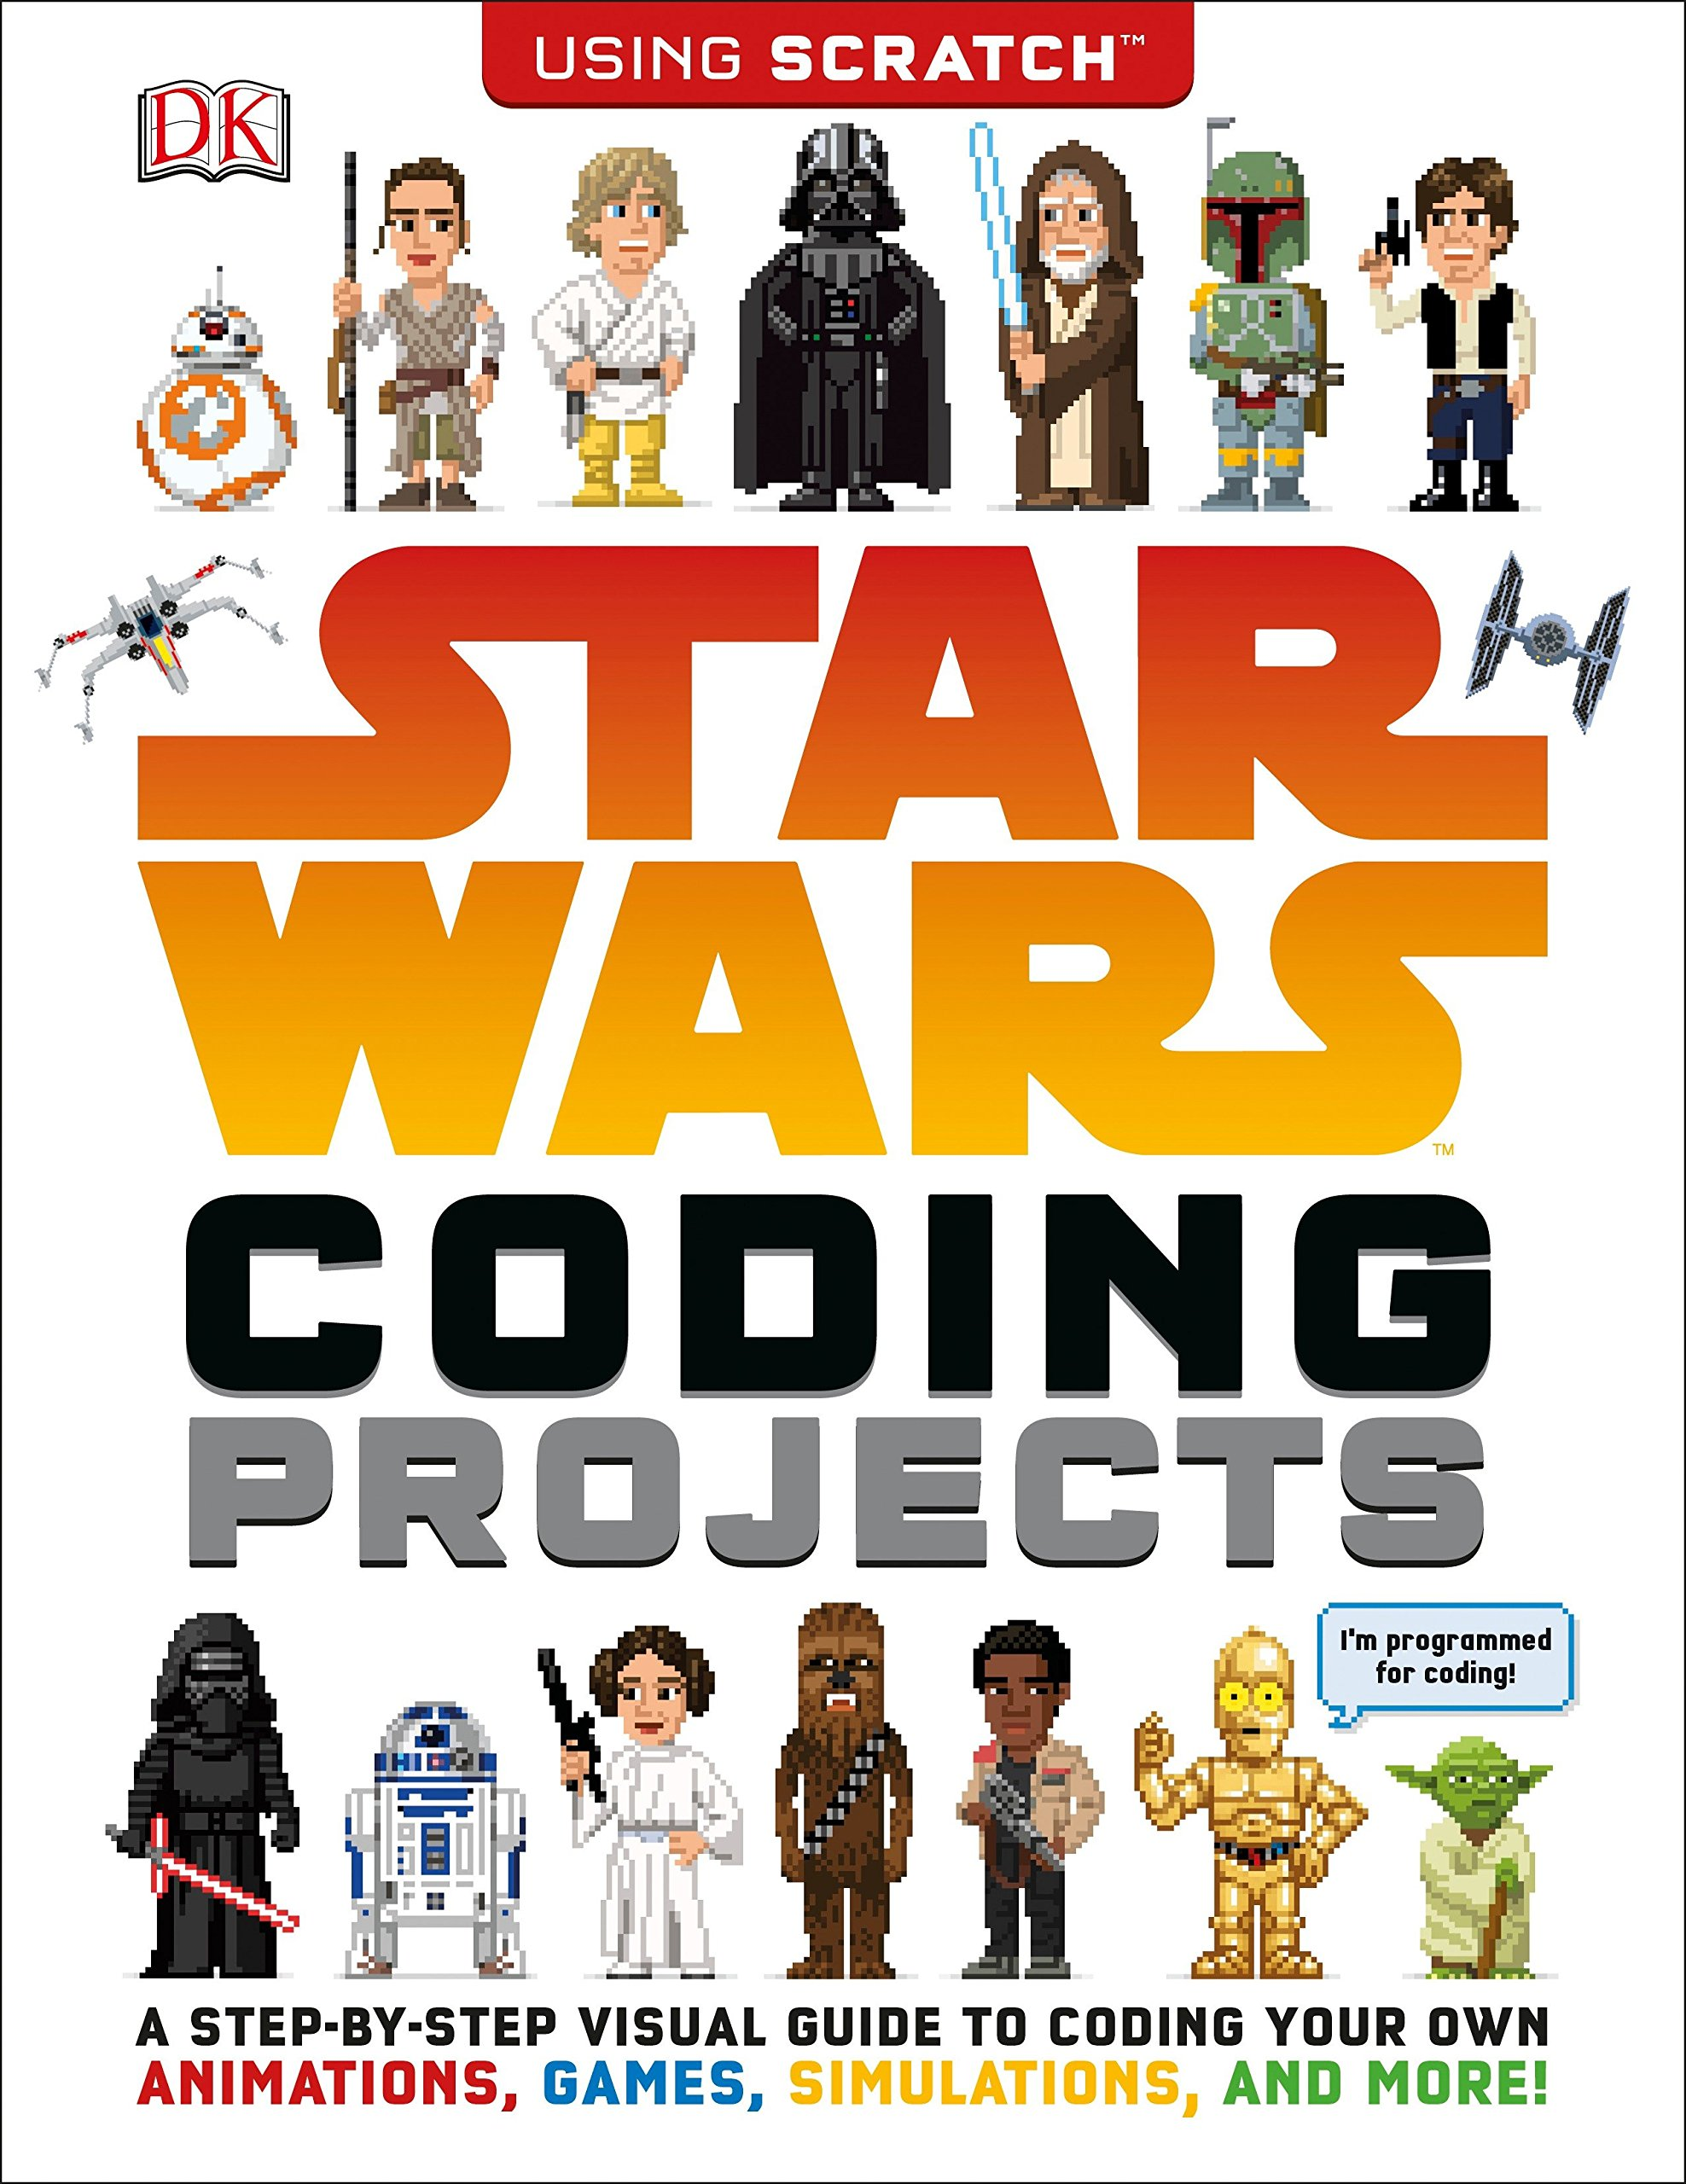 Star Wars Coding Projects: A Step-by-Step Visual Guide to Coding Your Own Animations, Games, Simulations an by DK Children